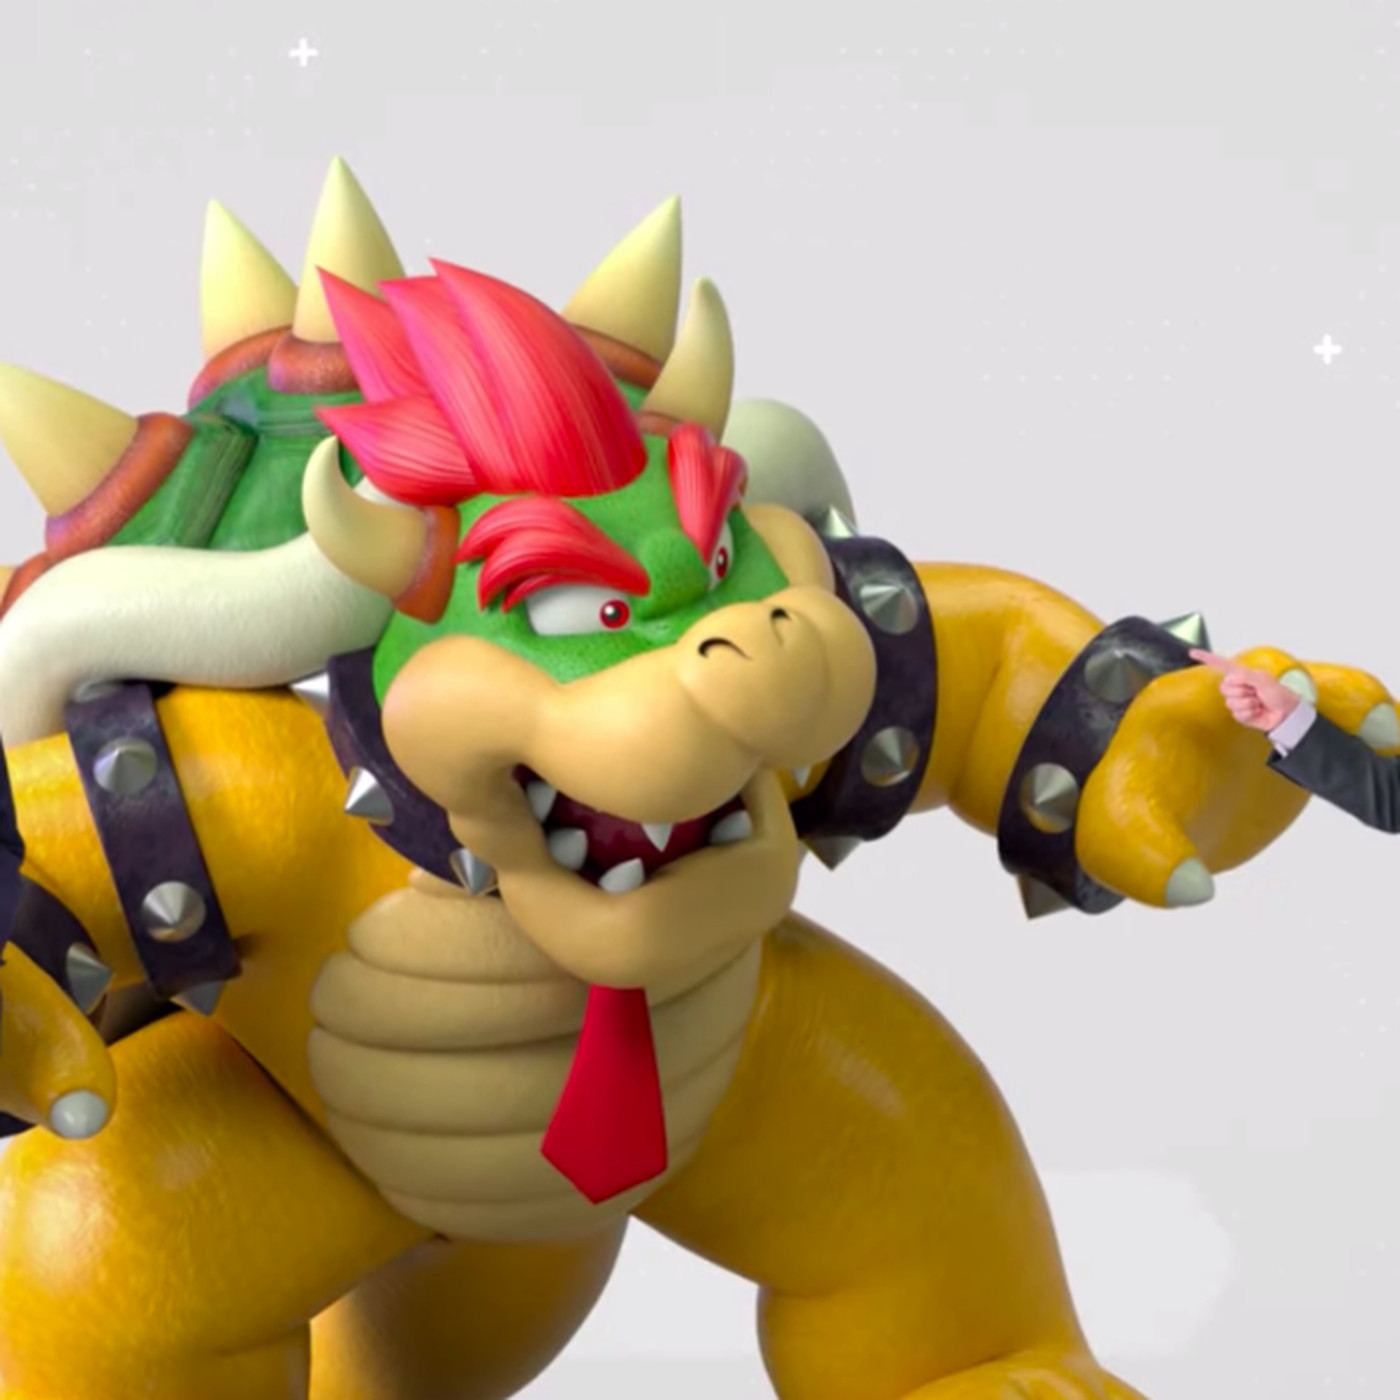 At E3, Nintendo riffs on Doug Bowser's name in the best way